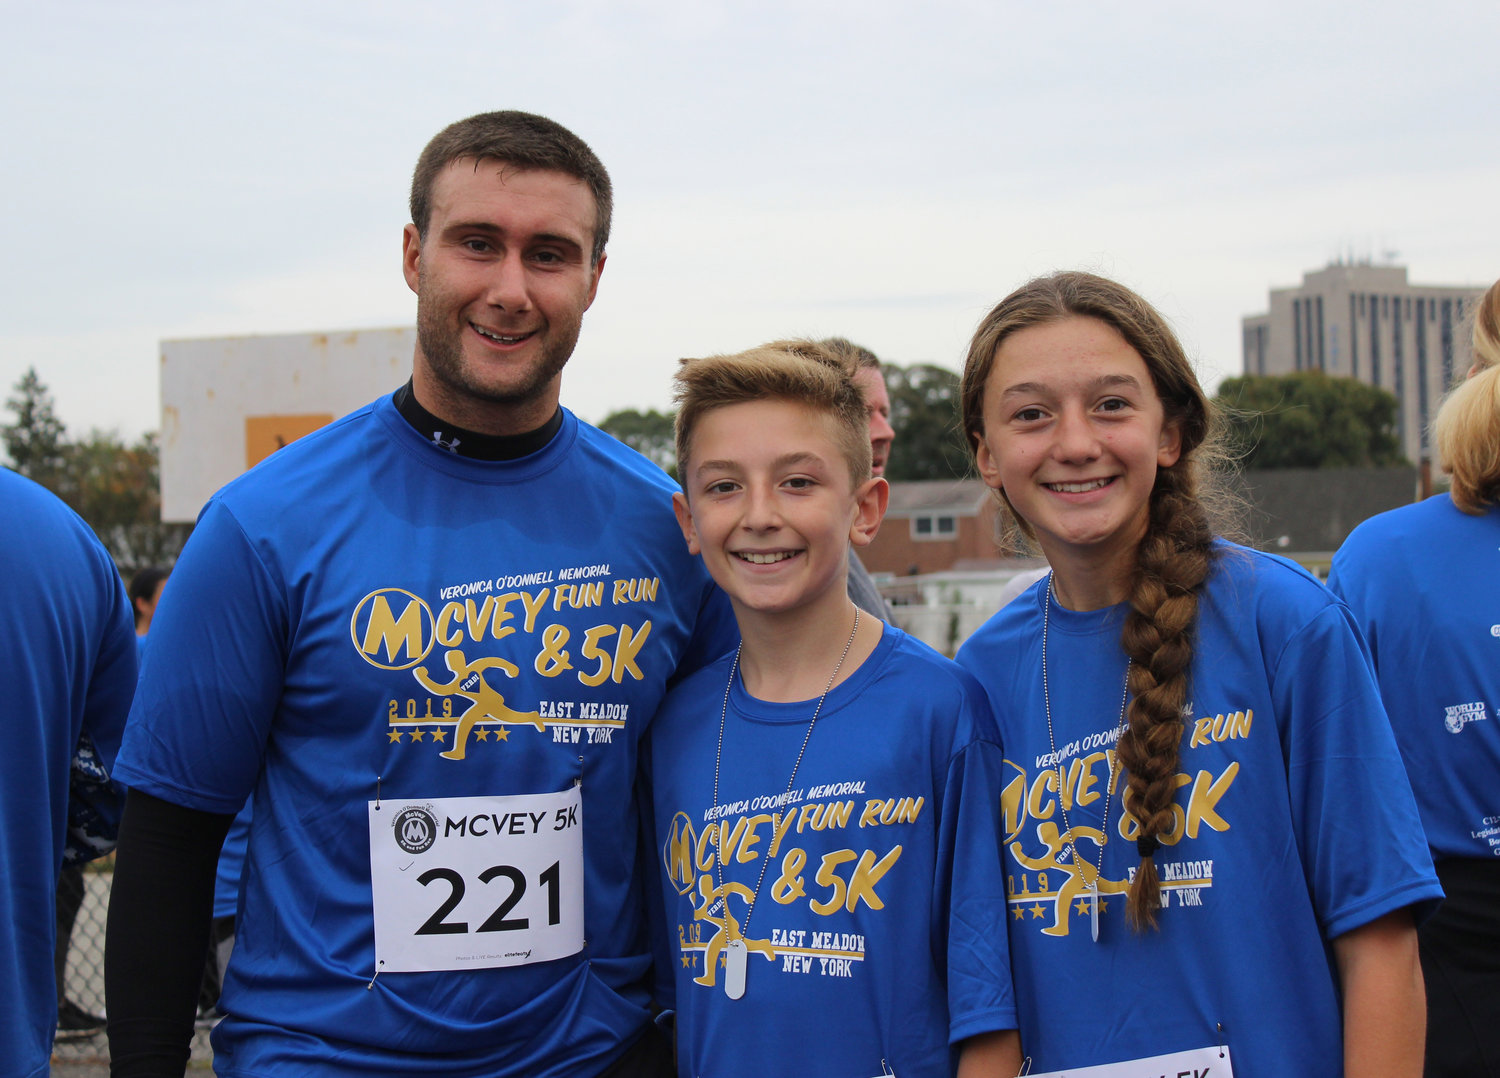 Alex Miller, a fifth-grade teacher at McVey Elementary School, met some familiar faces at the finish line, including his former student Antonio Ribeiro, now a sixth-grader at Woodland Middle School, and his sister, Victoria, a freshman at East Meadow High.